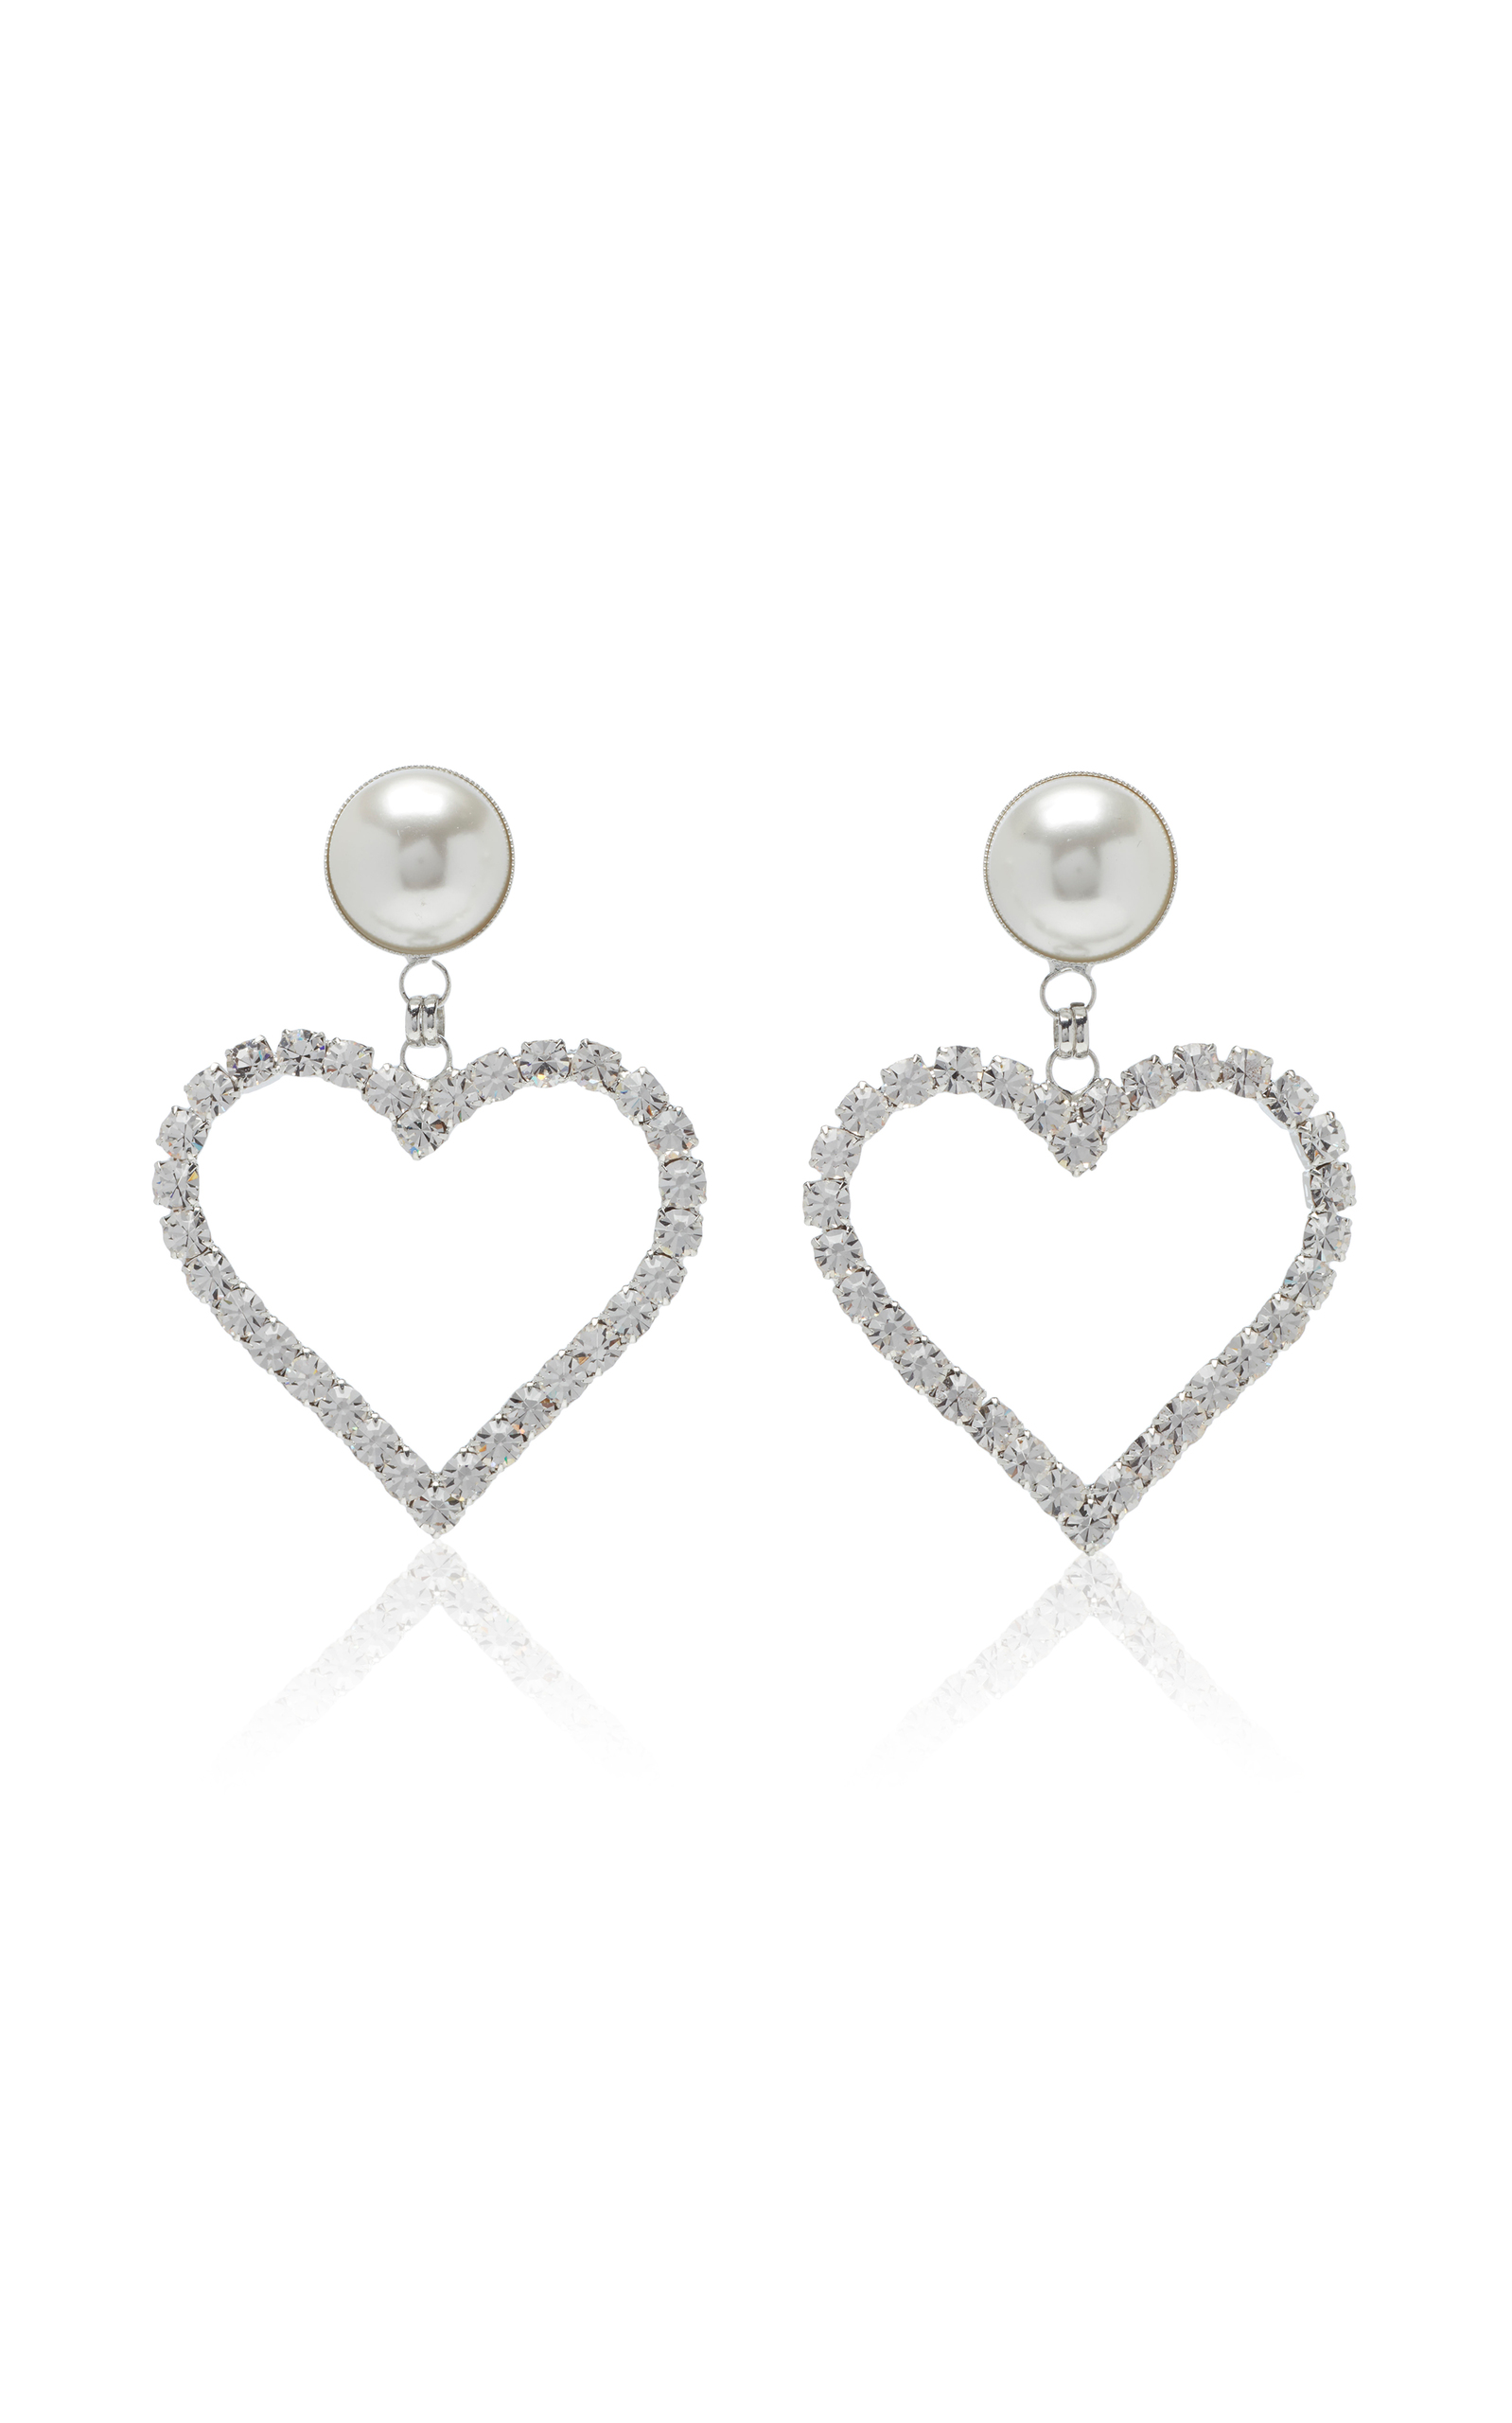 Alessandra Rich Crystal Heart Earrings With Pearl Clip In Silver